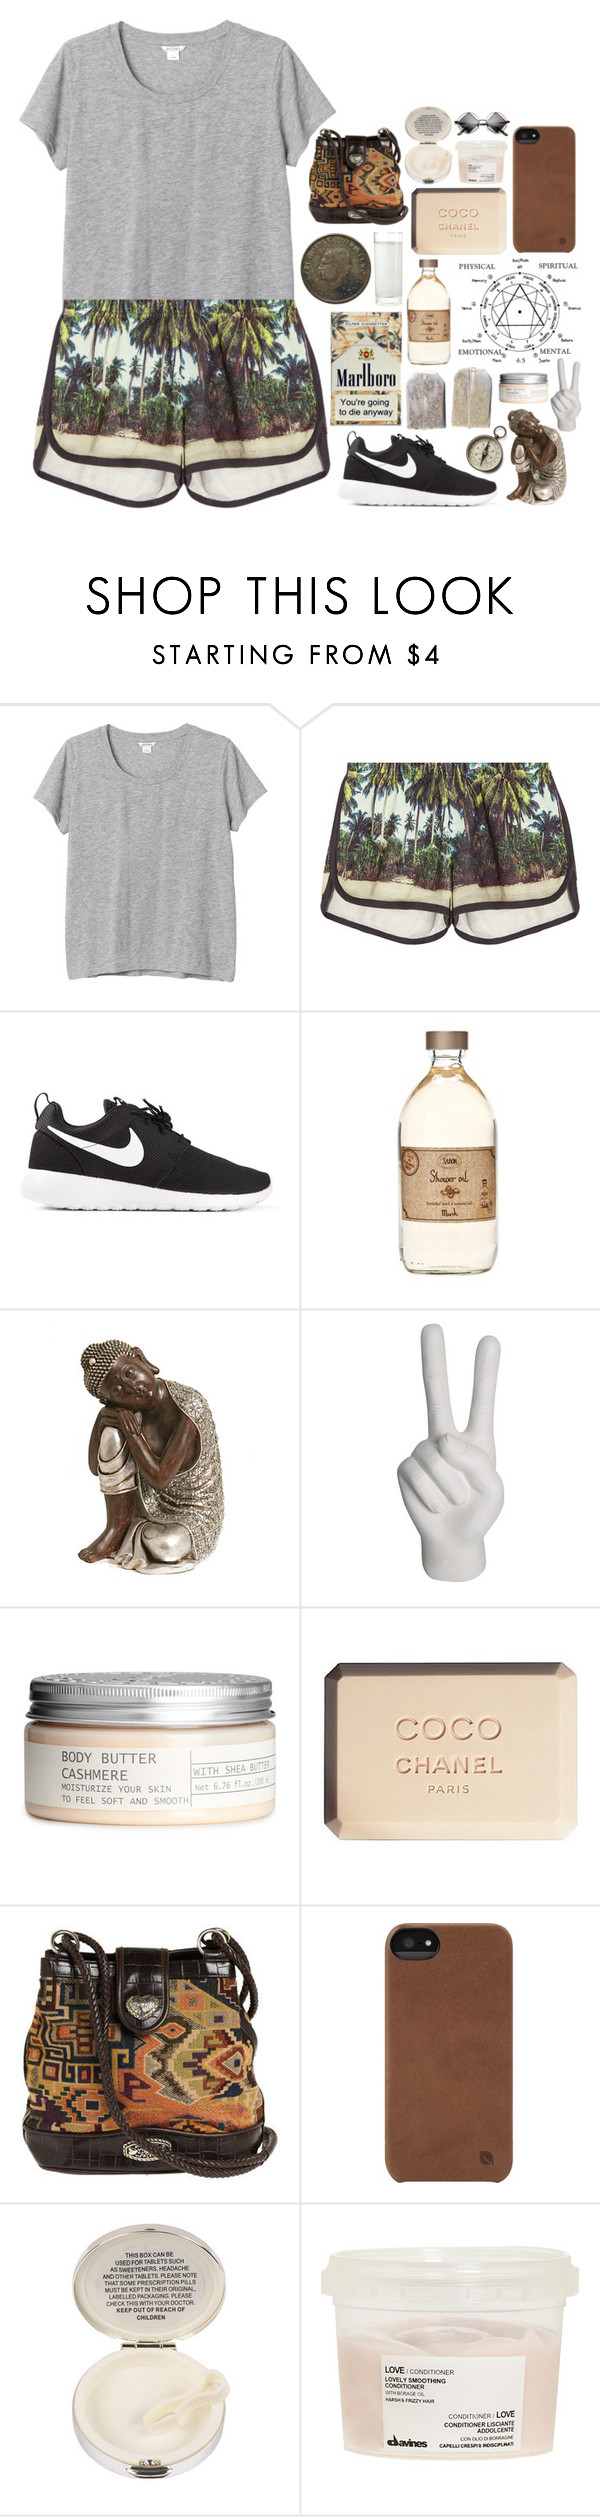 """""""Penny"""" by hannaheconomedes ❤ liked on Polyvore featuring Monki, All Things Fabulous, NIKE, Puji, Noir, H&M, Chanel, Incase, Lulu Guinness and Davines"""